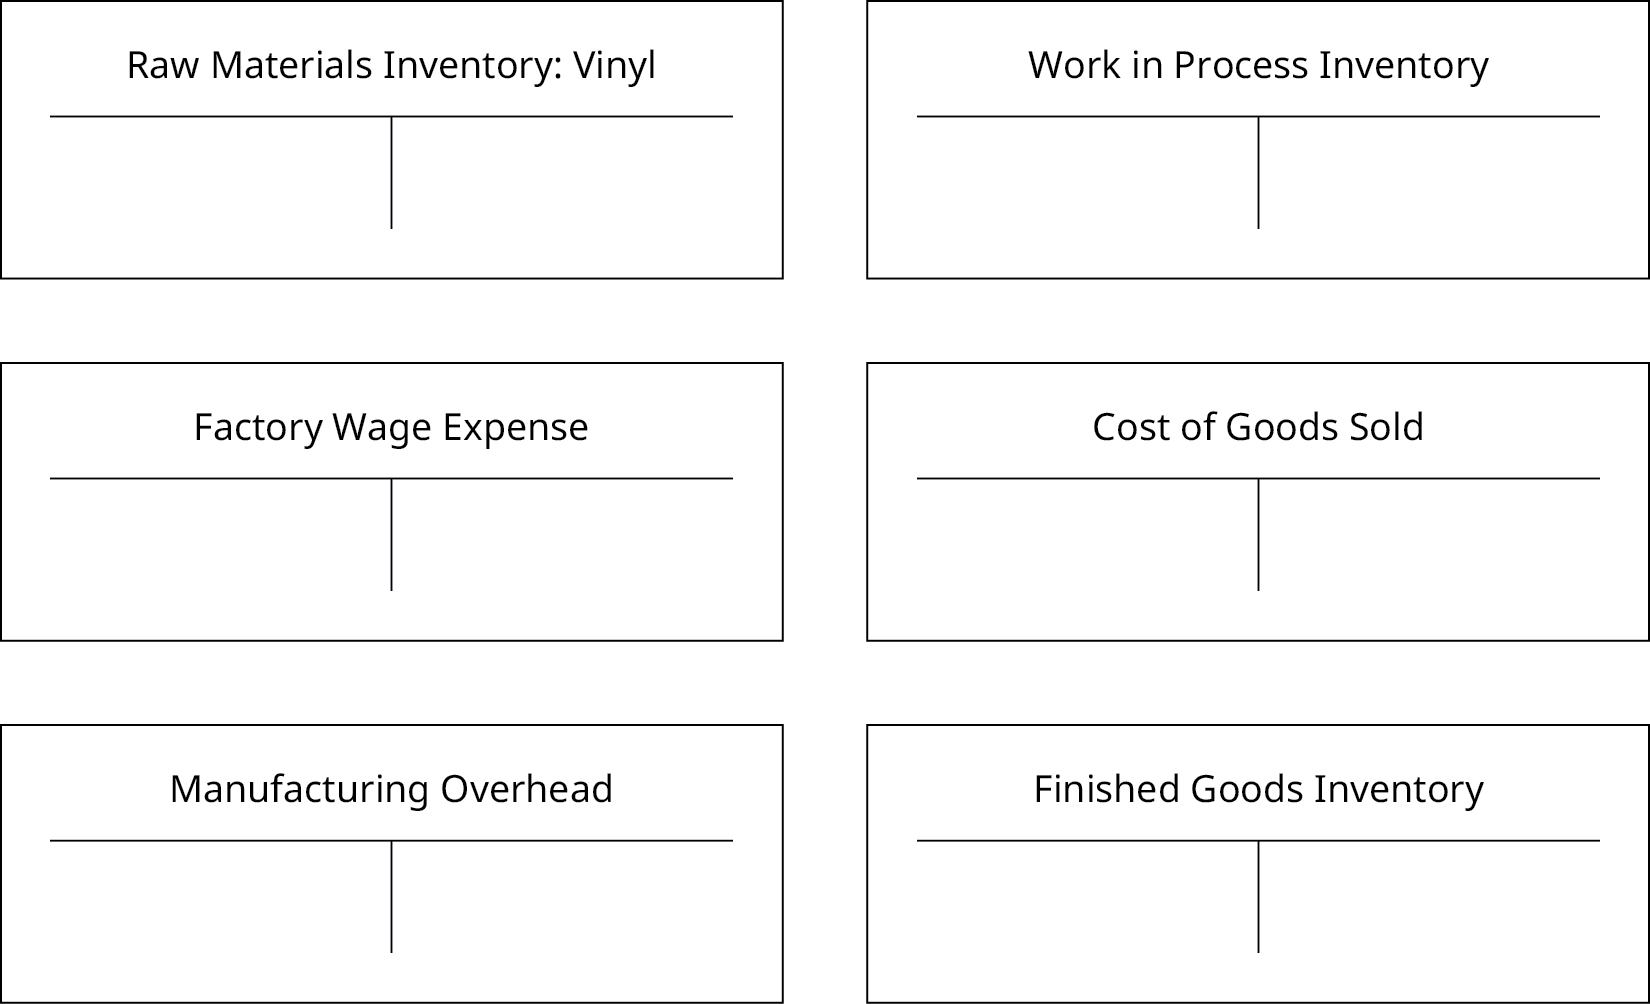 """There are six blank T-Accounts in this figure: one each for """"Raw Materials Inventory: Vinyl"""", """"Factory Wage Expense"""", """"Manufacturing Overhead"""", """"Work in Process Inventory"""", """"Cost of Goods Sold"""", and """"Finished Goods Inventory."""""""